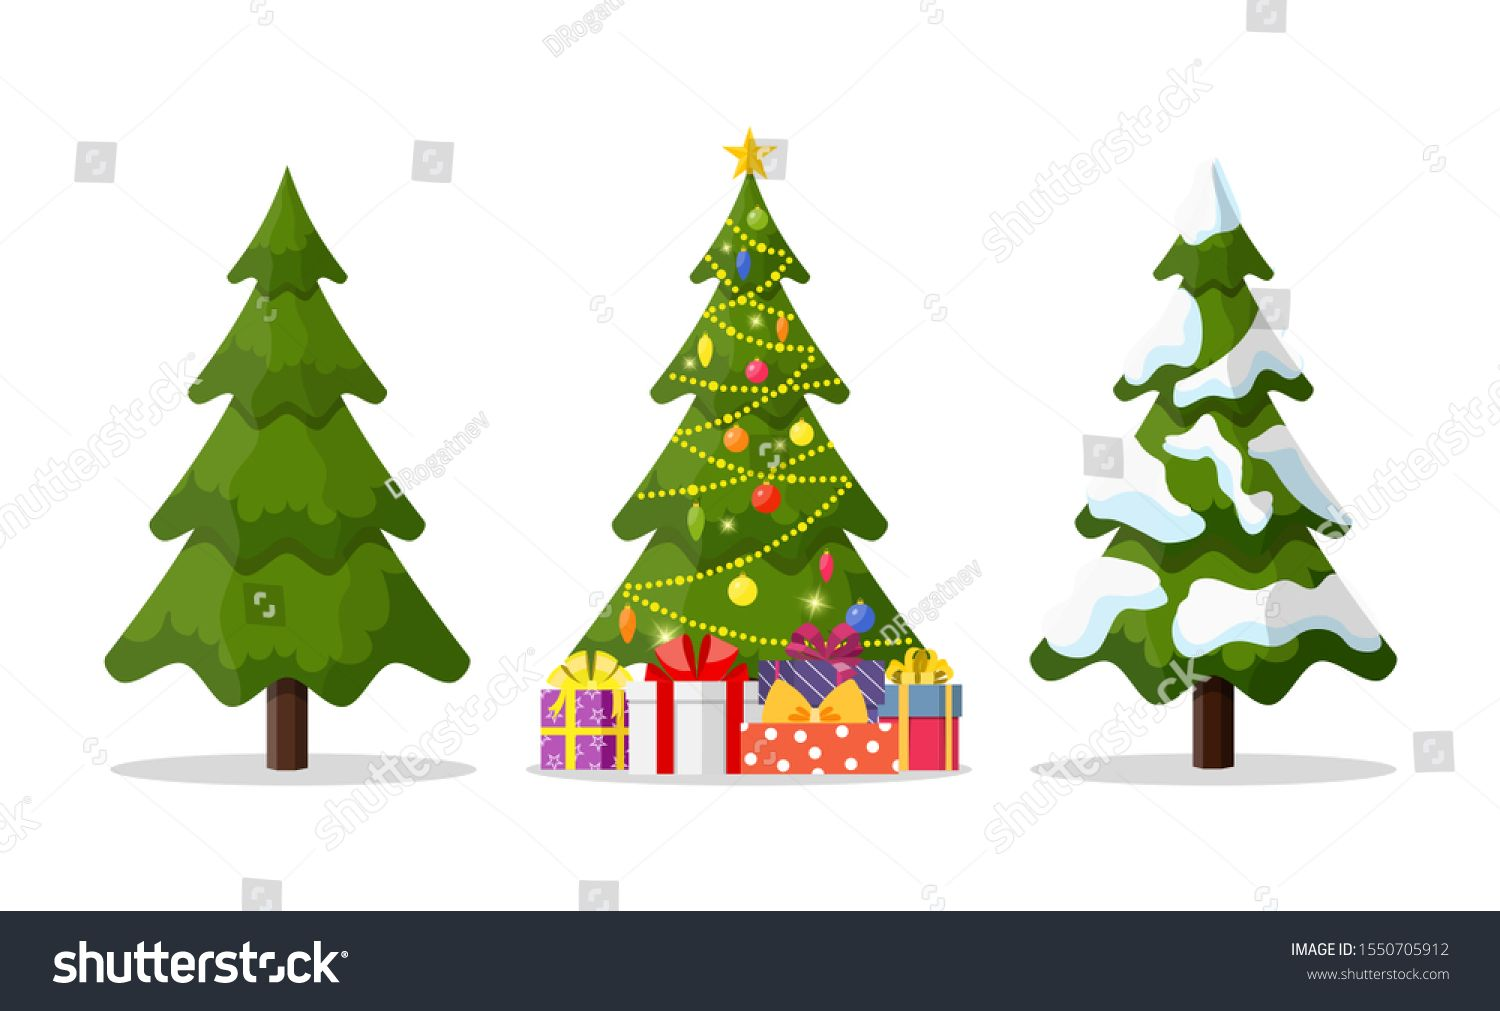 Christmas Tree In 3 Different Situations Christmas Tree And Holiday Gifts Fir Tree Decorated With A Star Balls Tree Decorations Christmas Ornaments Holiday